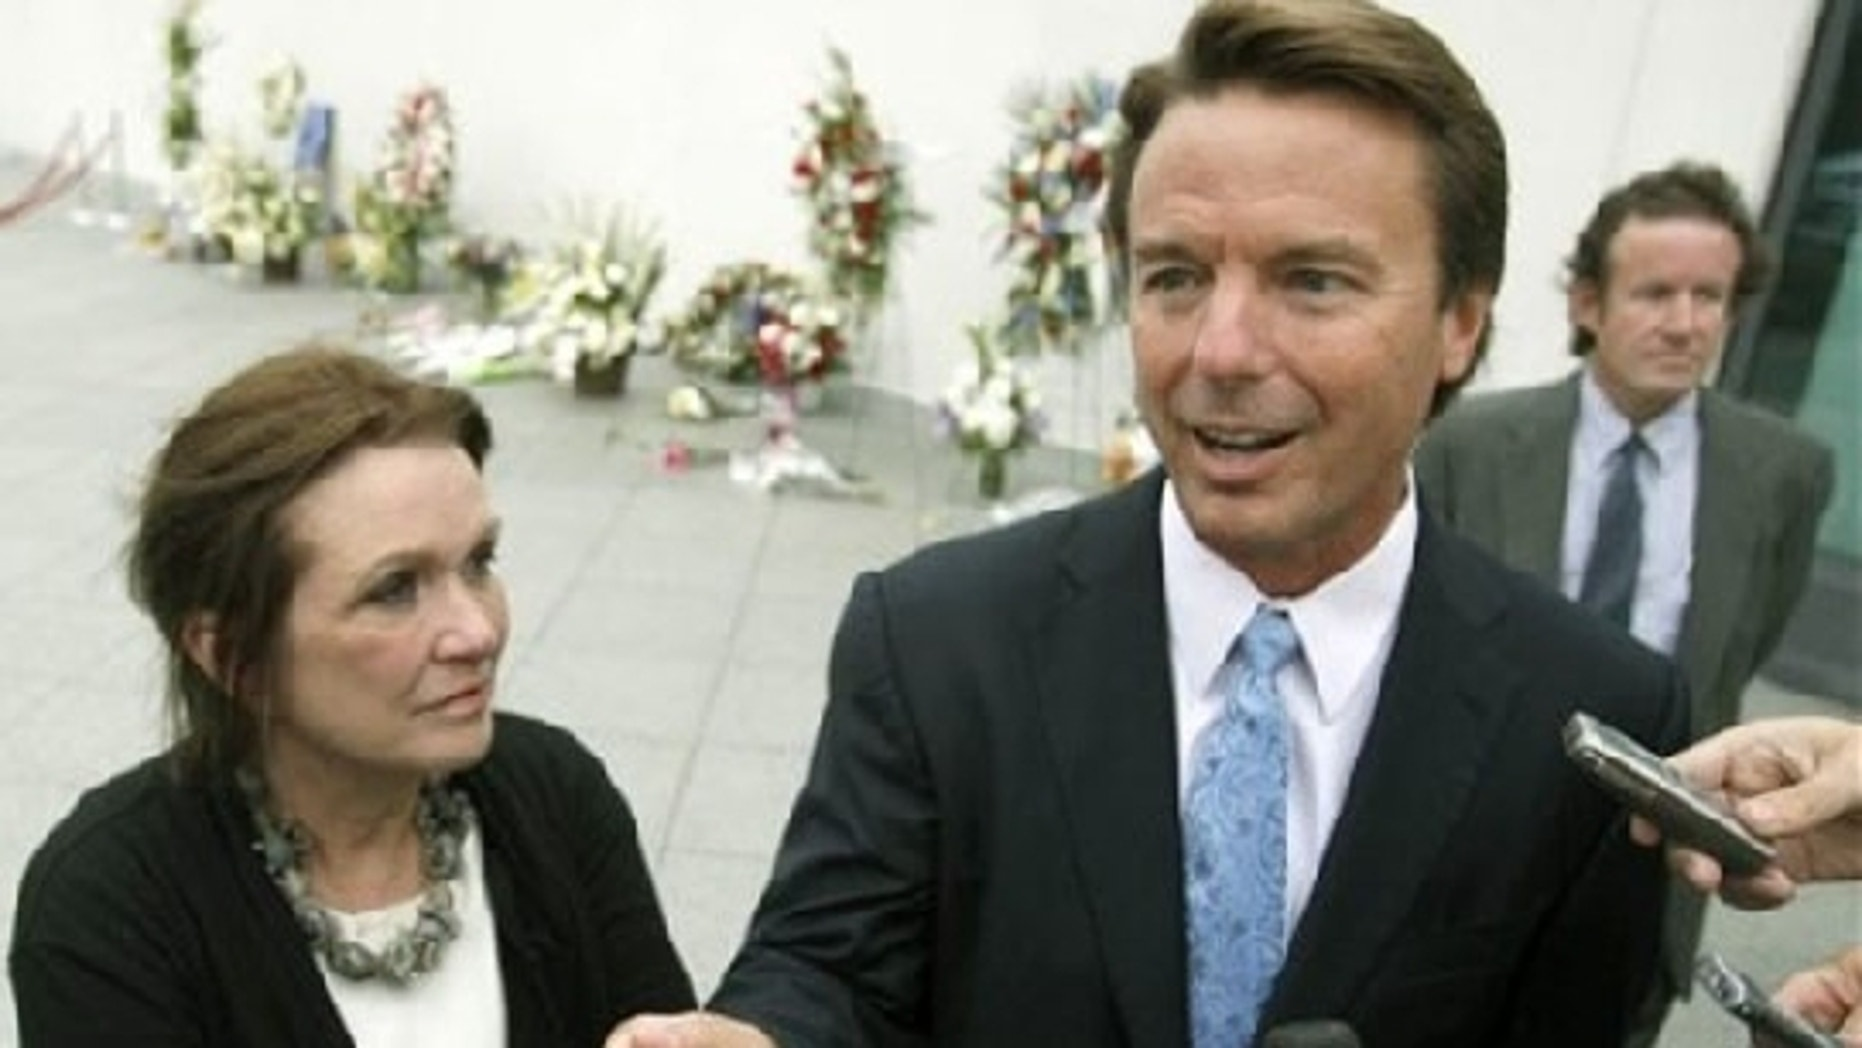 Aug. 28, 2009: Speaking of standing by her man, Elizabeth Edwards joins former Sen. John Edwards at a memorial service in Boston for the late Sen. Edward Kennedy. (AP Photo)